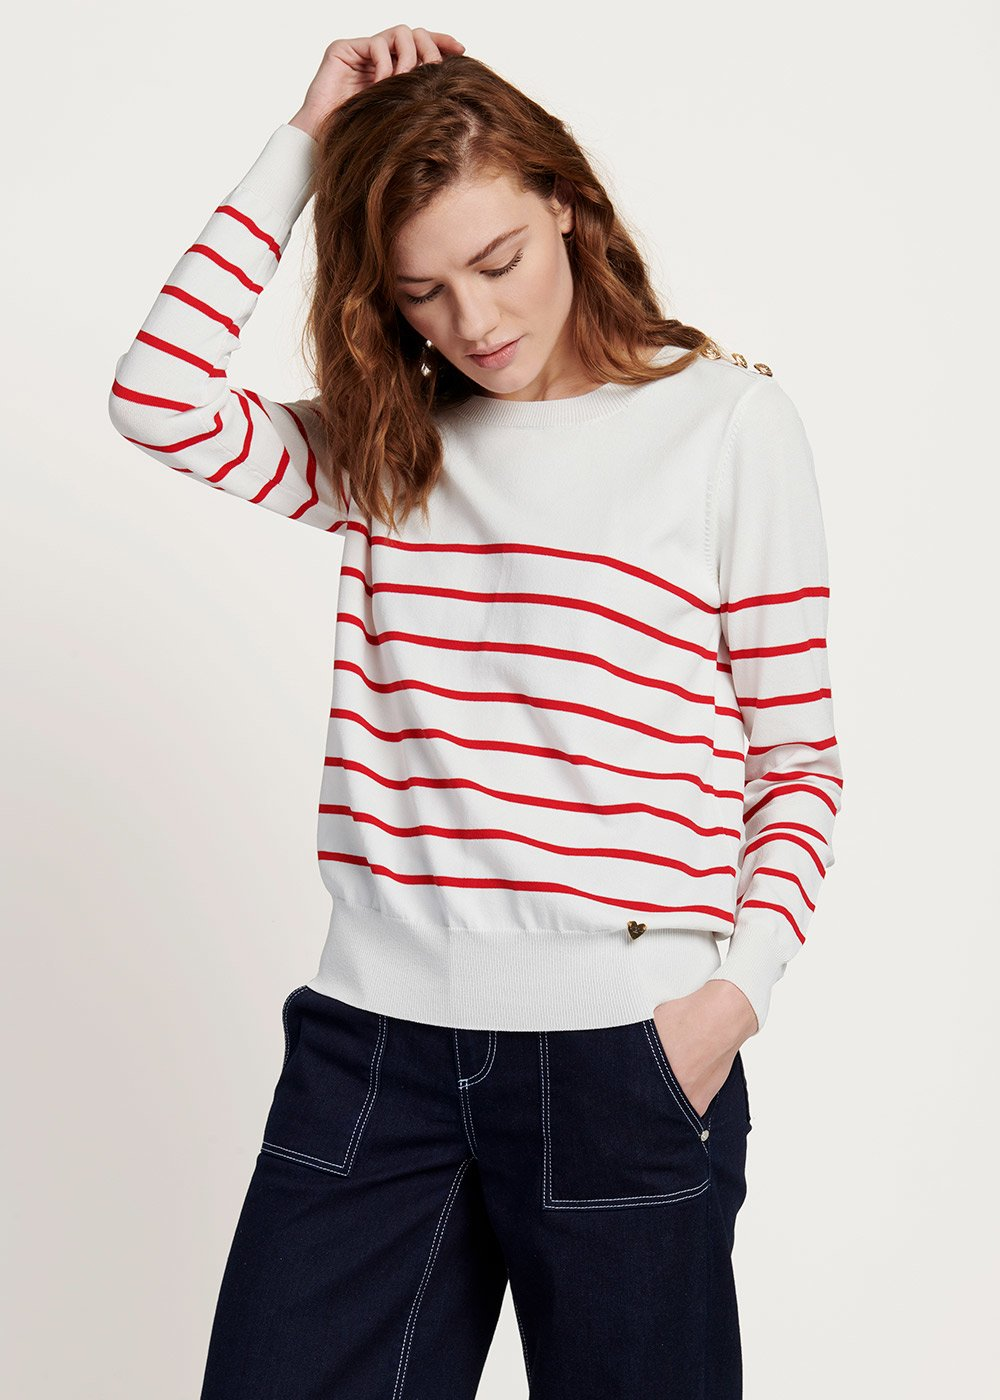 Maxi two-tone sweater with gold buttons - White\ Aragosta\ Stripes - Woman